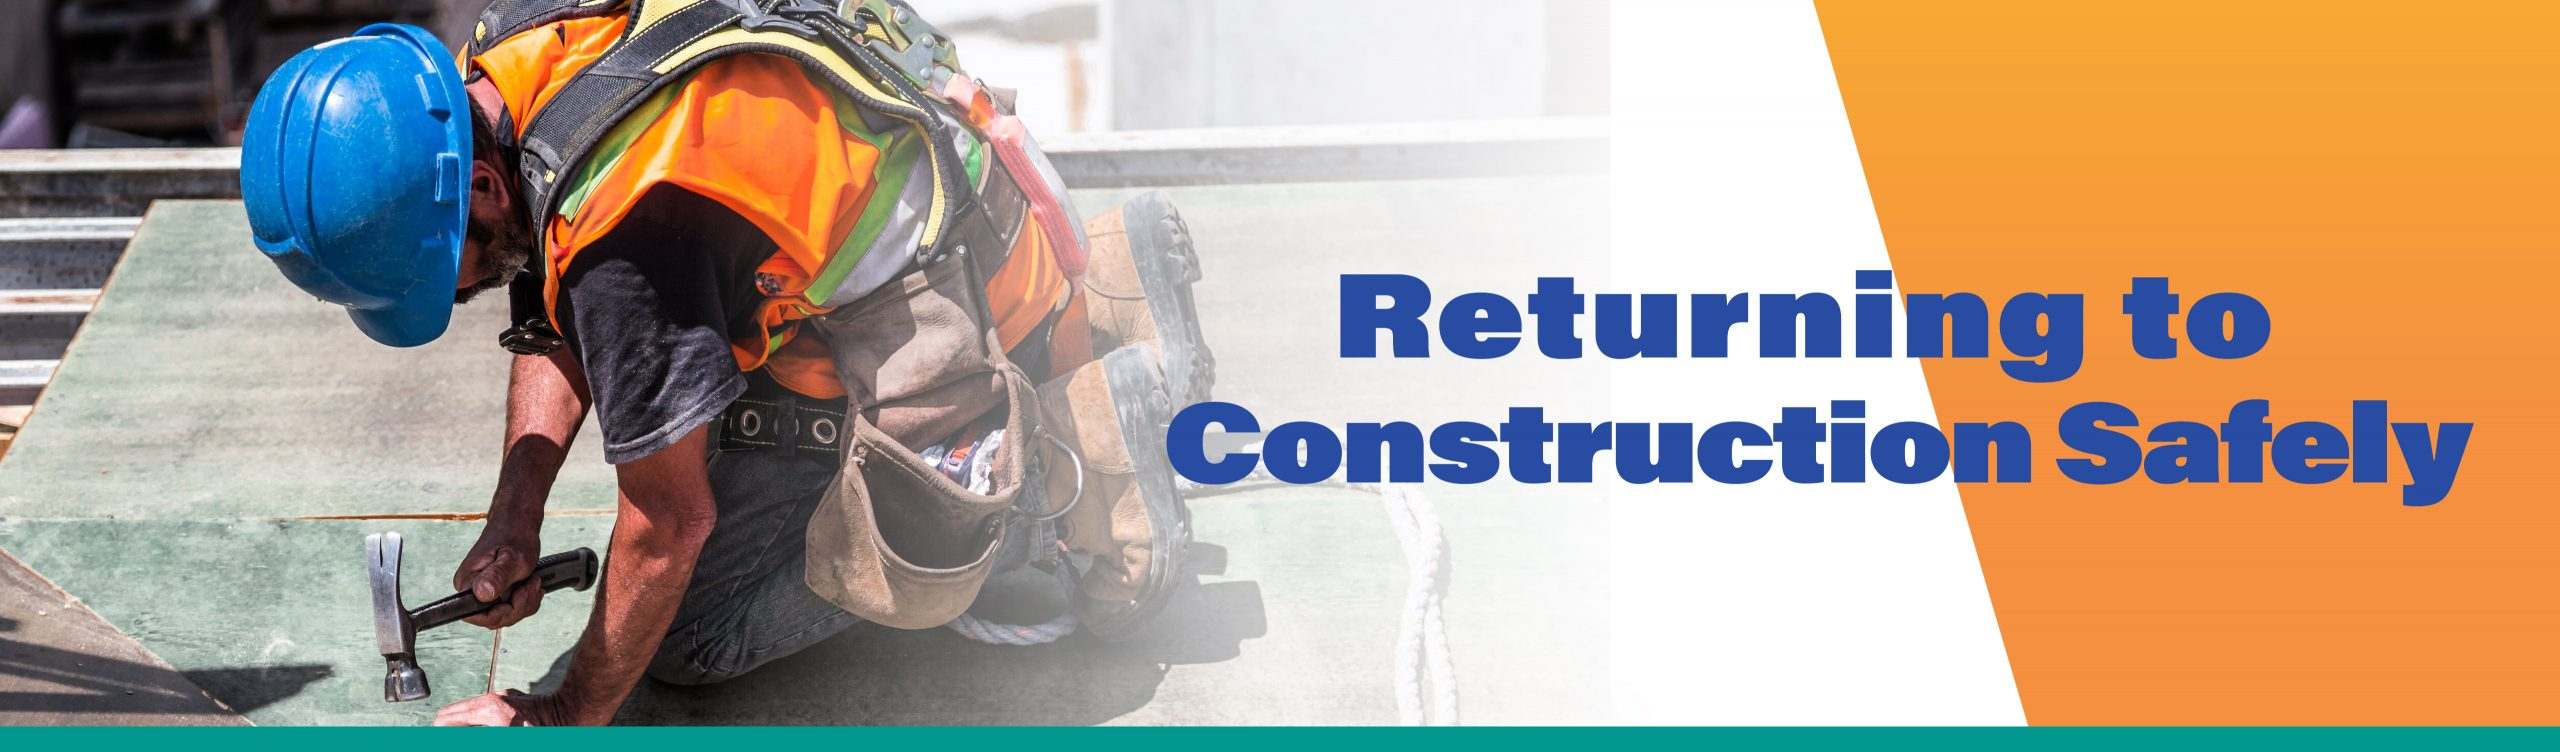 Returning to Construction Safely Decorative Banner Image